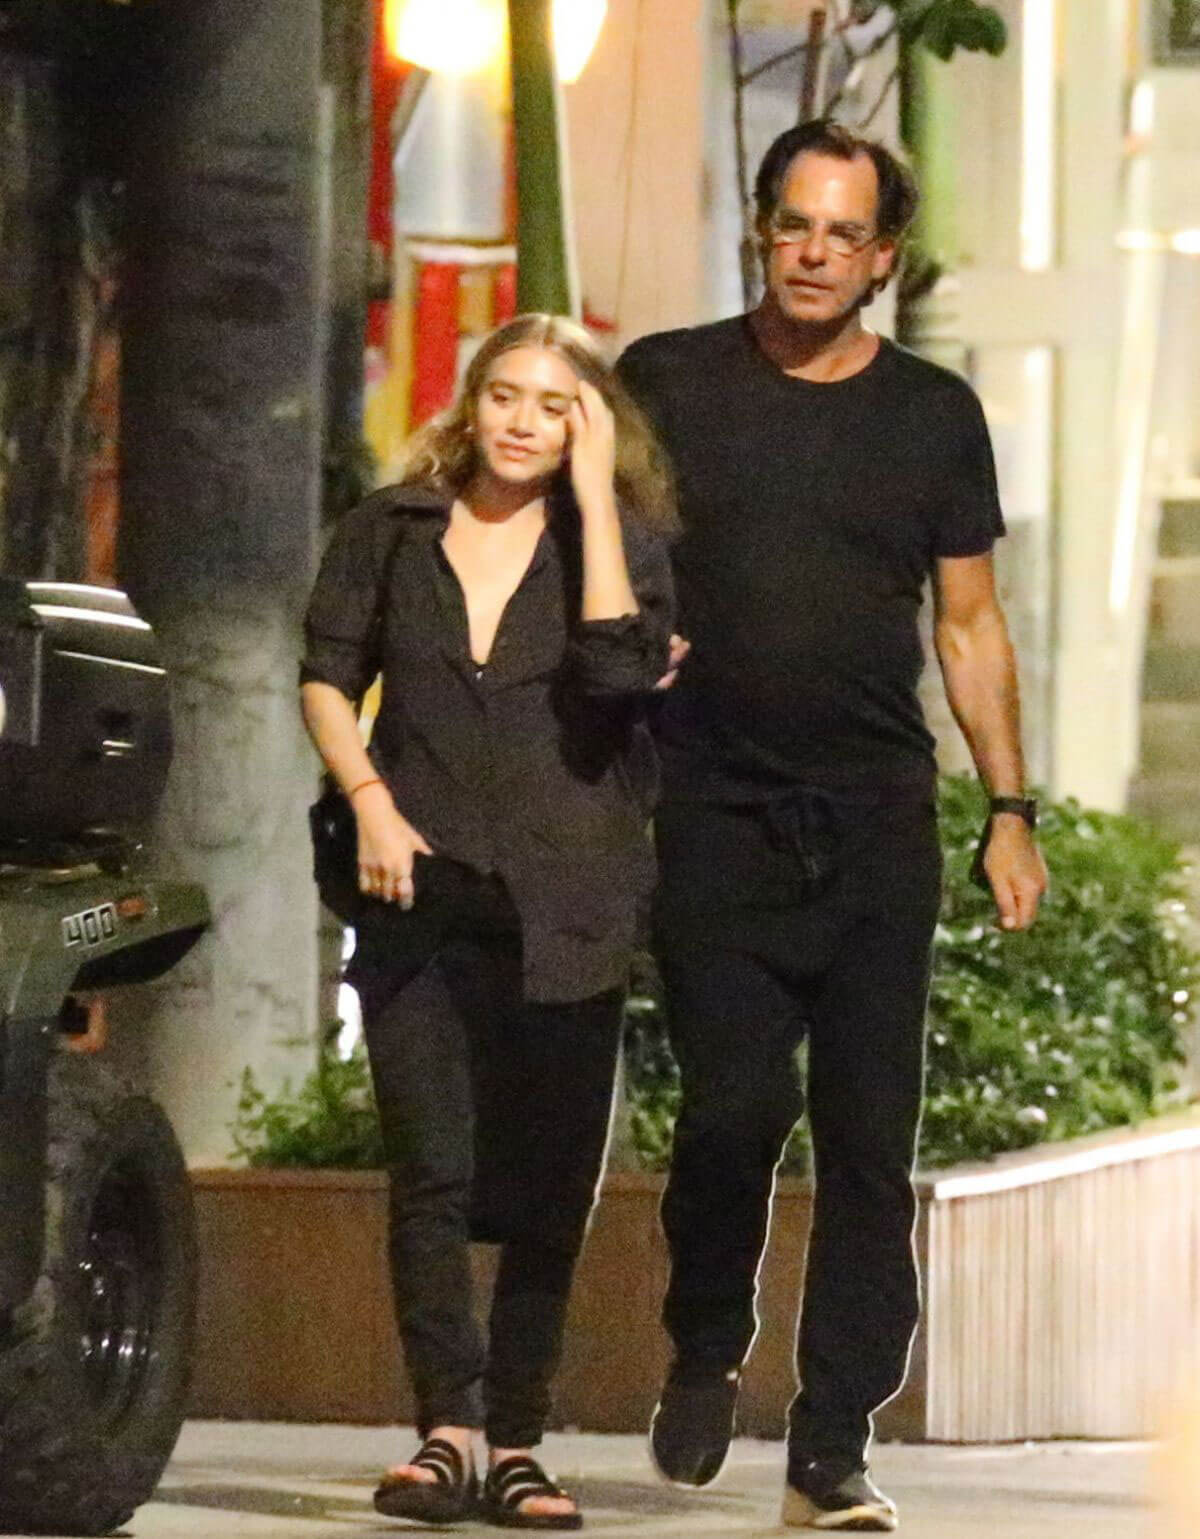 Ashley Olsen and Richard Sachs on Vacation in St. Barth Photos